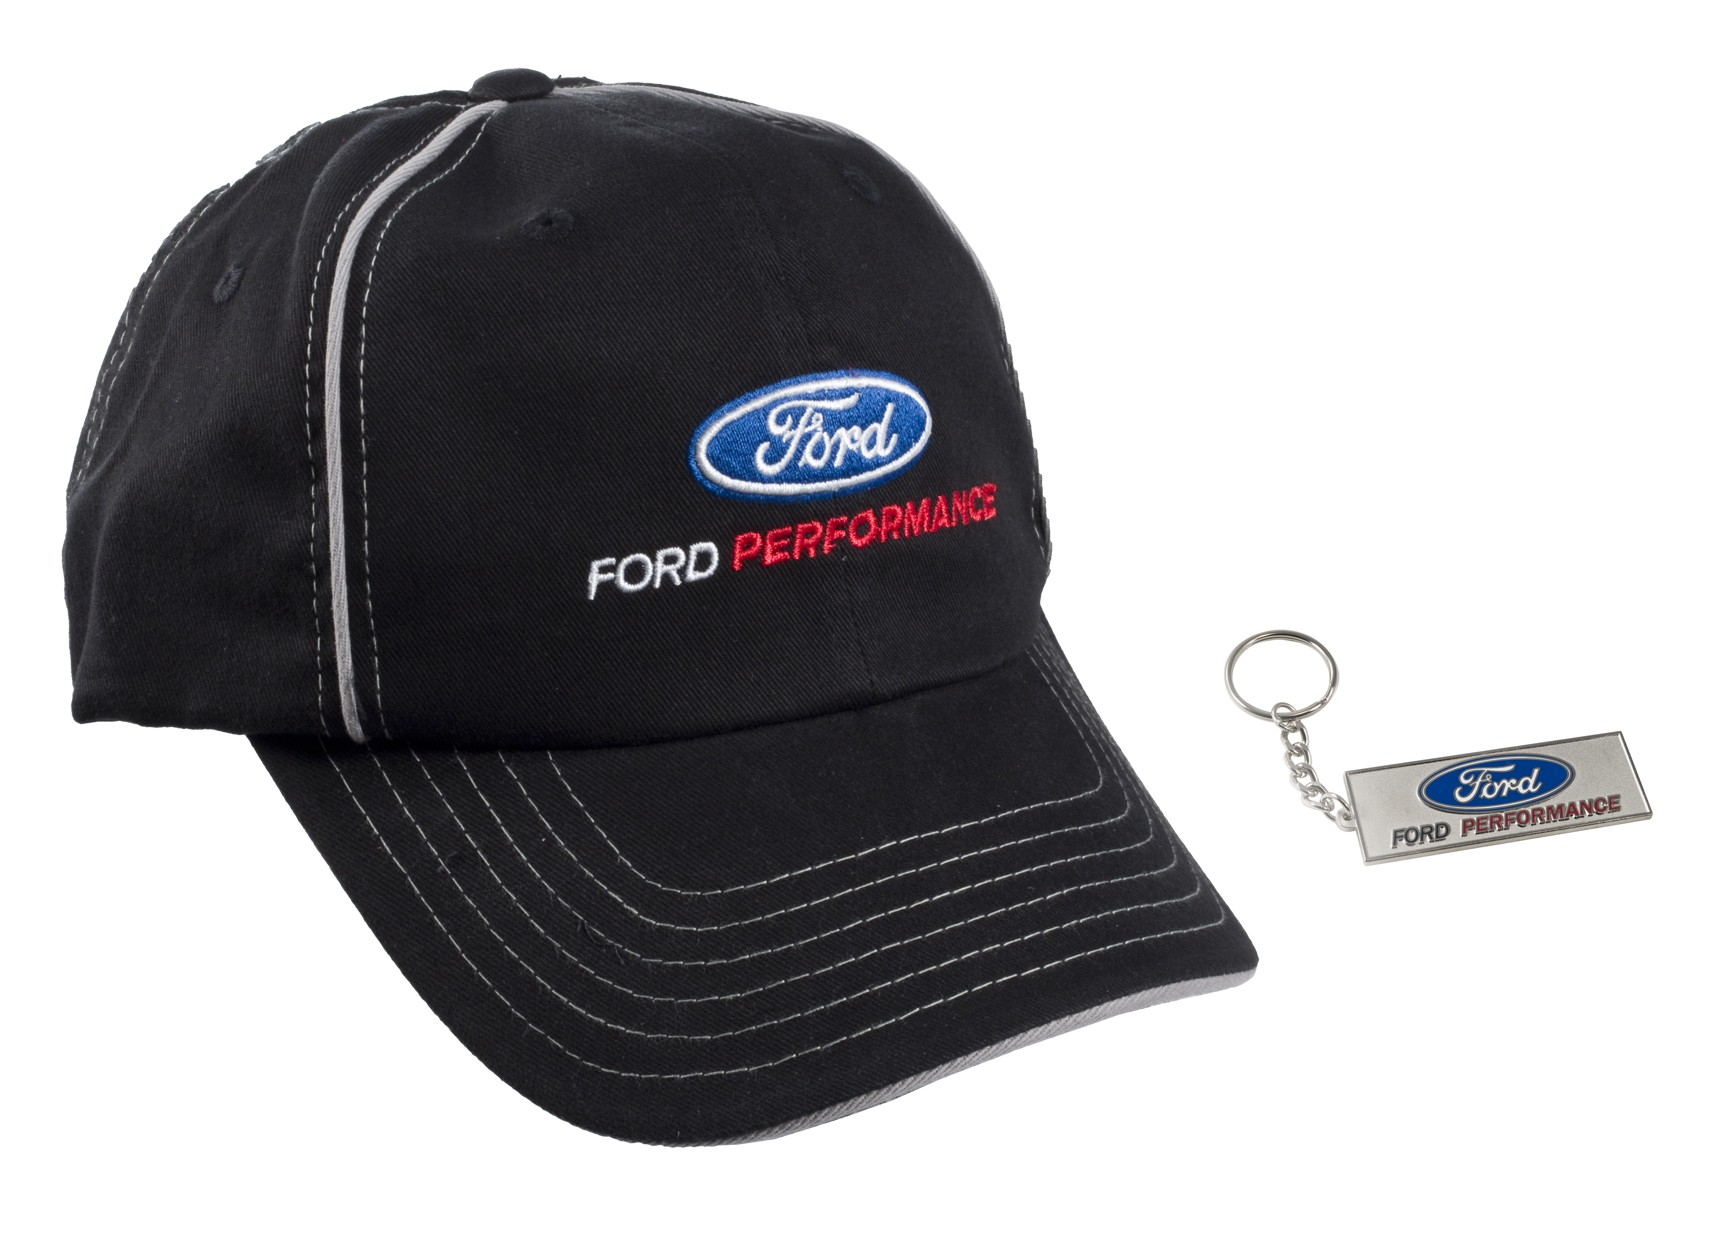 85b05a8cf Ford Performance Oval Logo Black & Silver Adjustable Hat Cap w/ Keychain